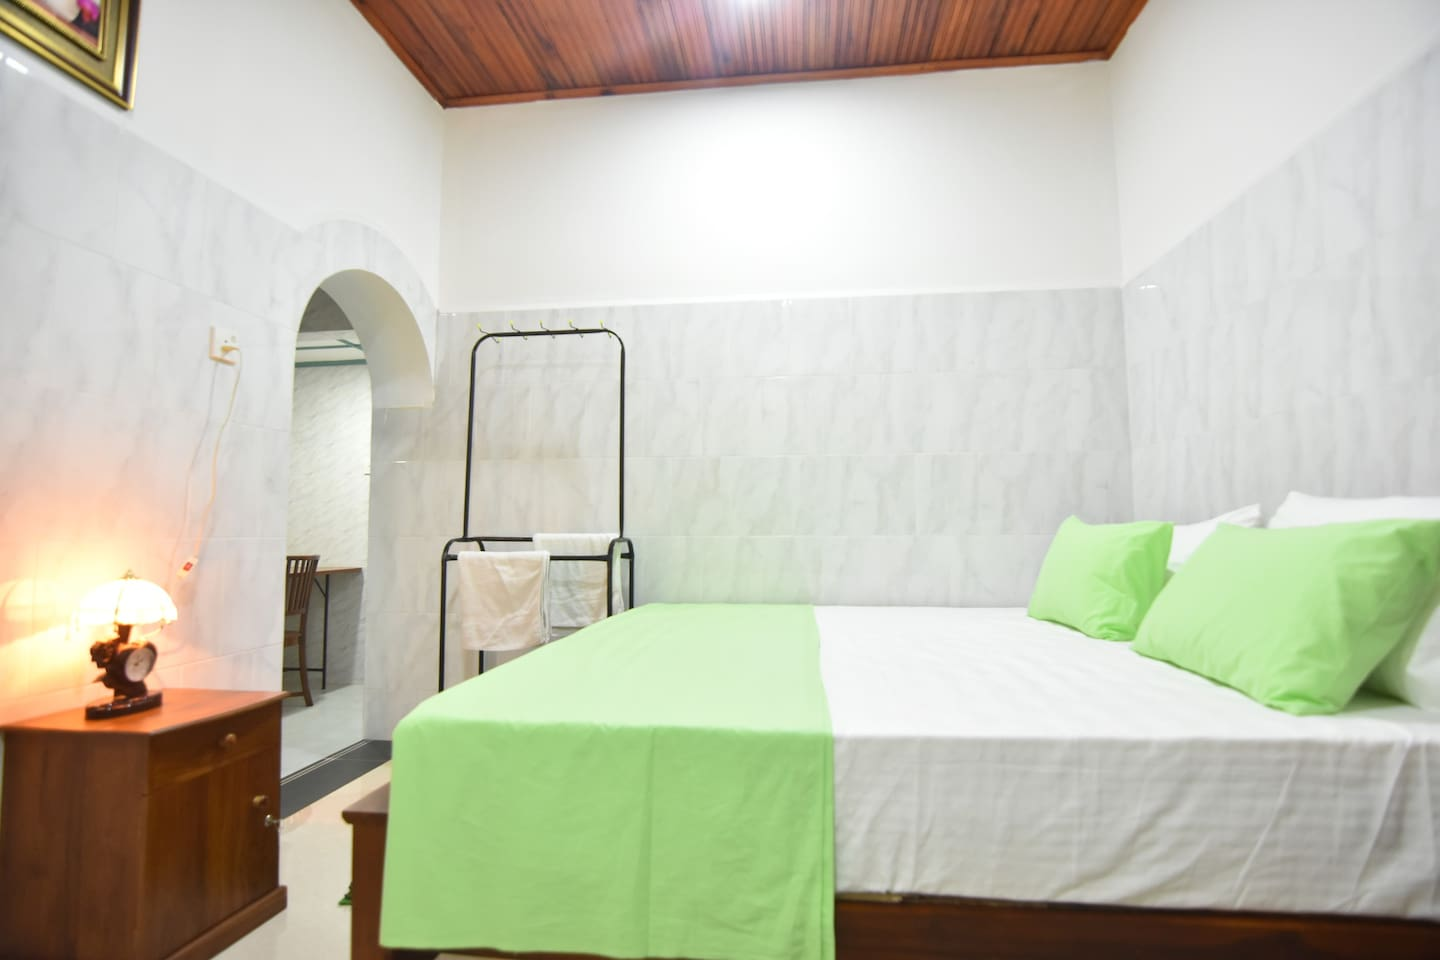 106 stranded double room